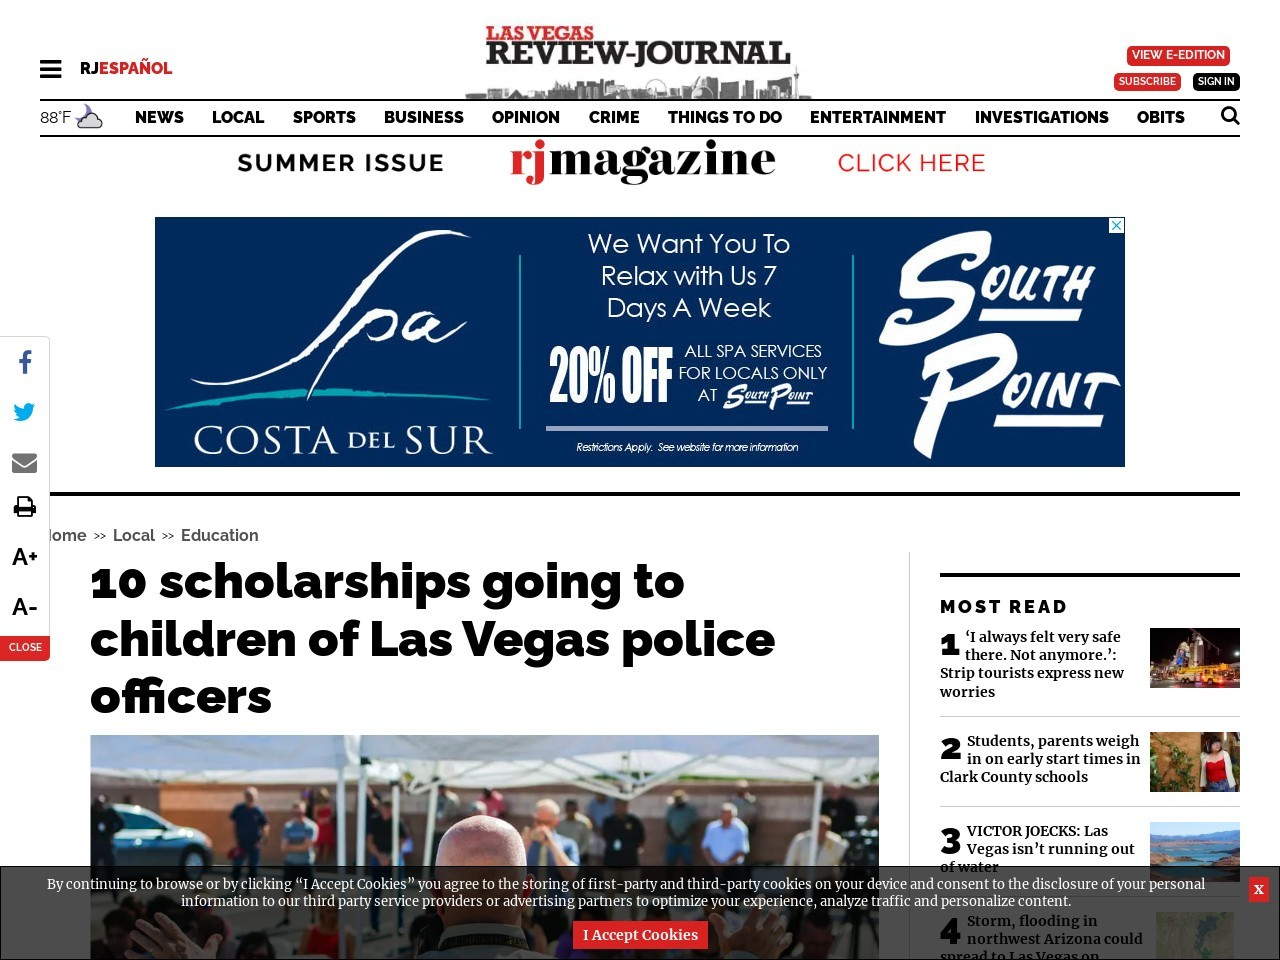 10 scholarships going to children of Las Vegas police officers